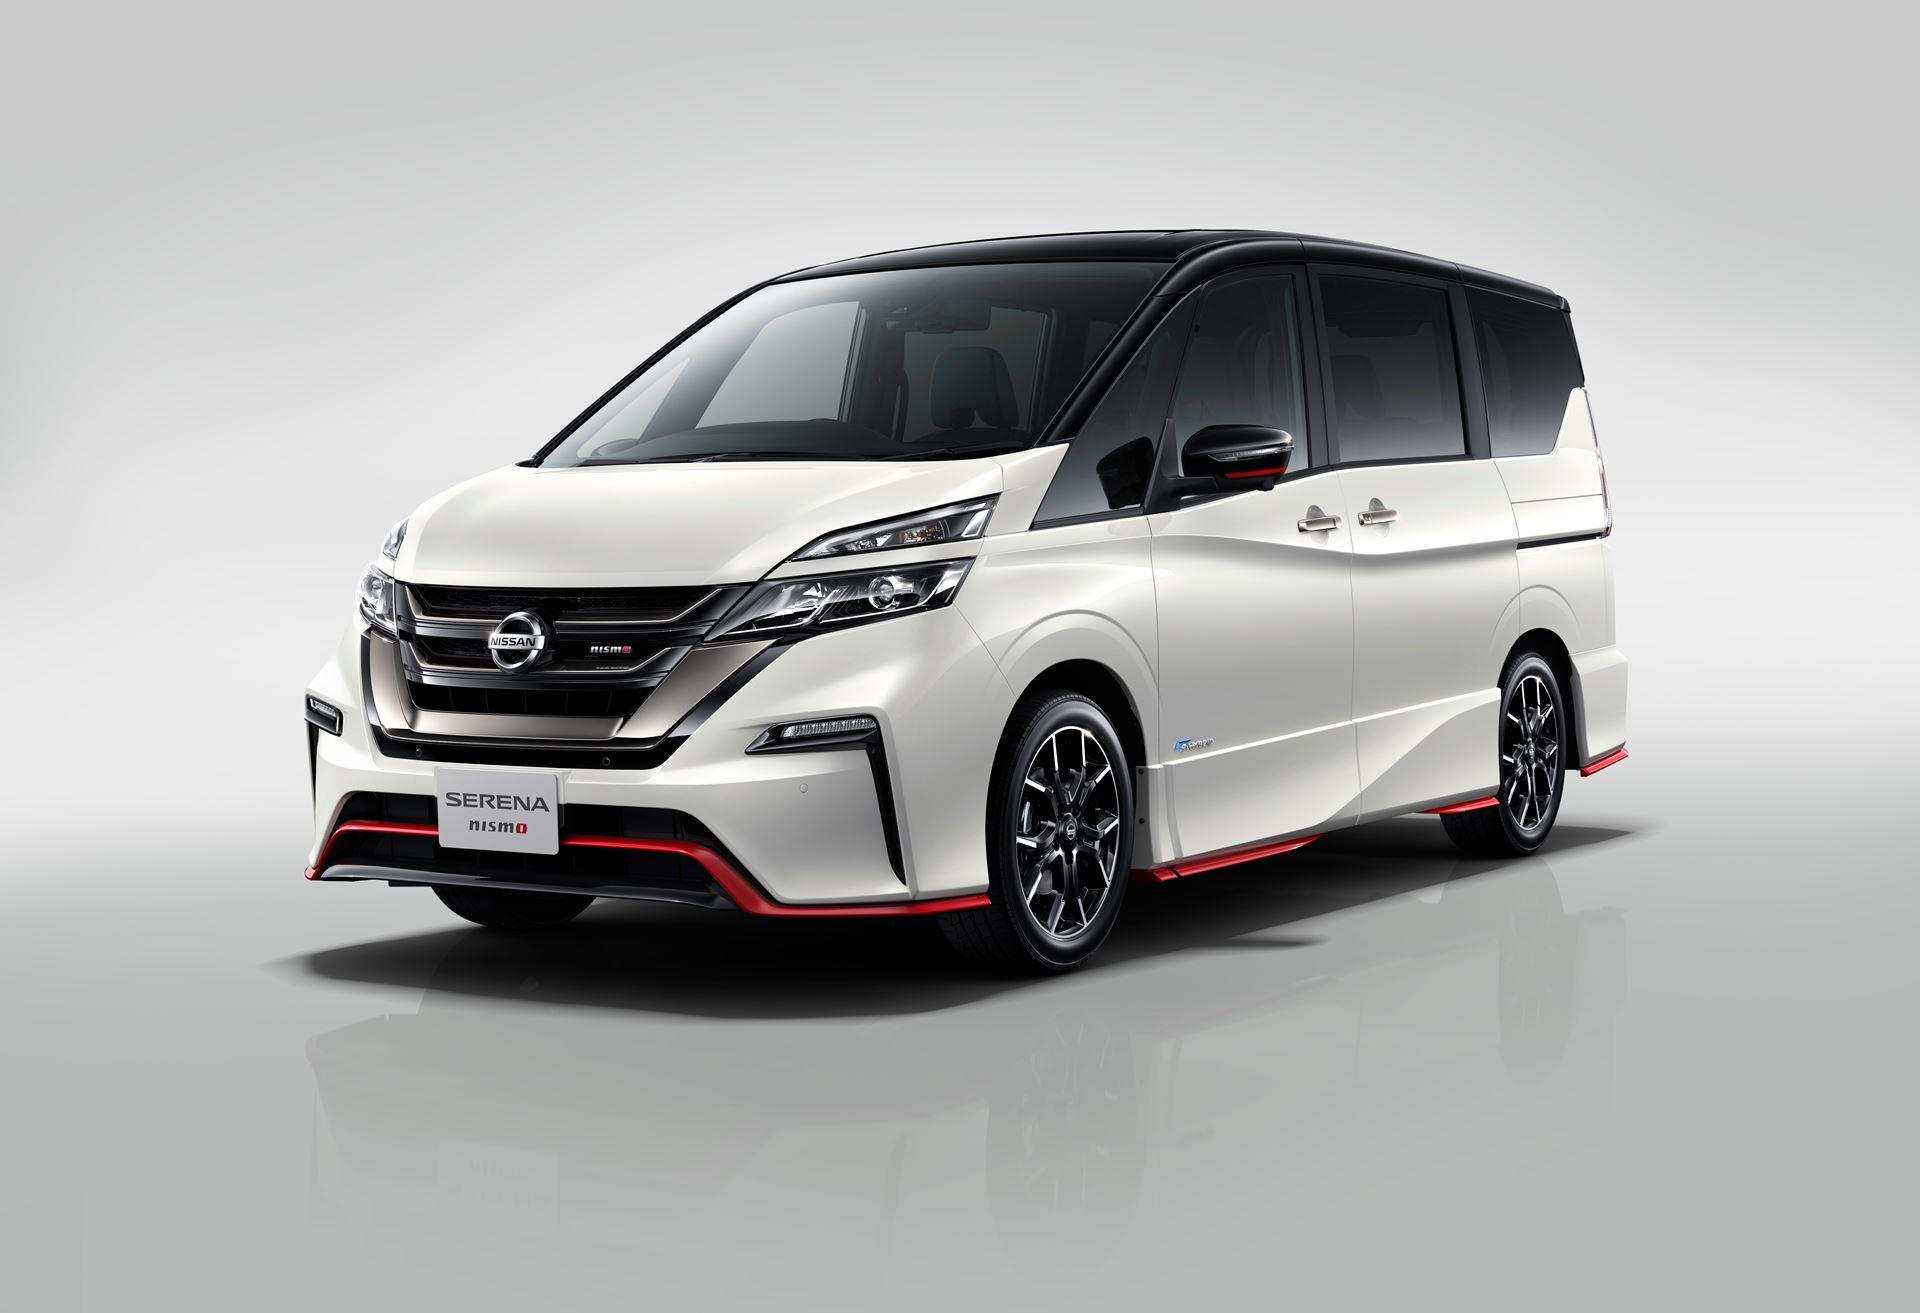 25 Great Nissan Serena 2020 Concept with Nissan Serena 2020